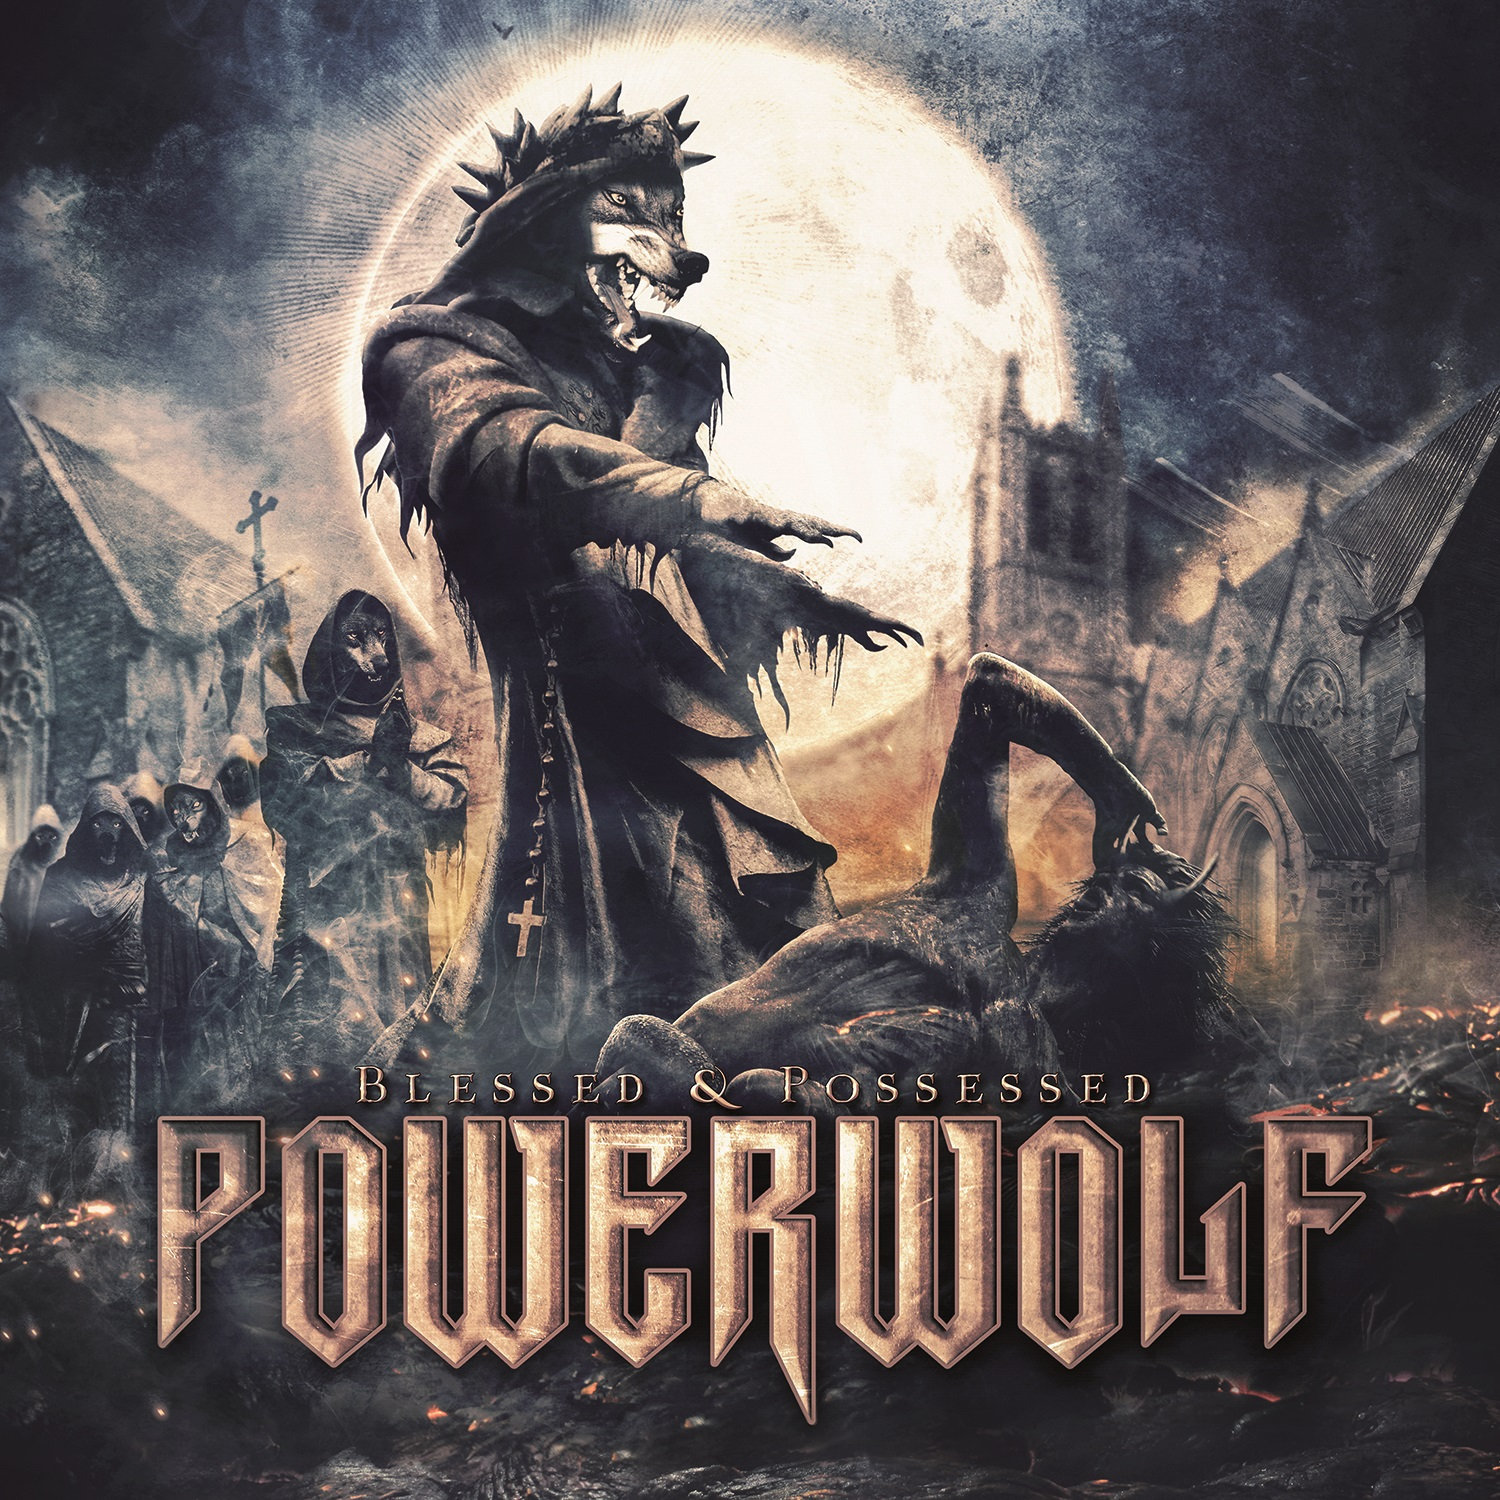 Powerwolf – Blessed & Possessed Review